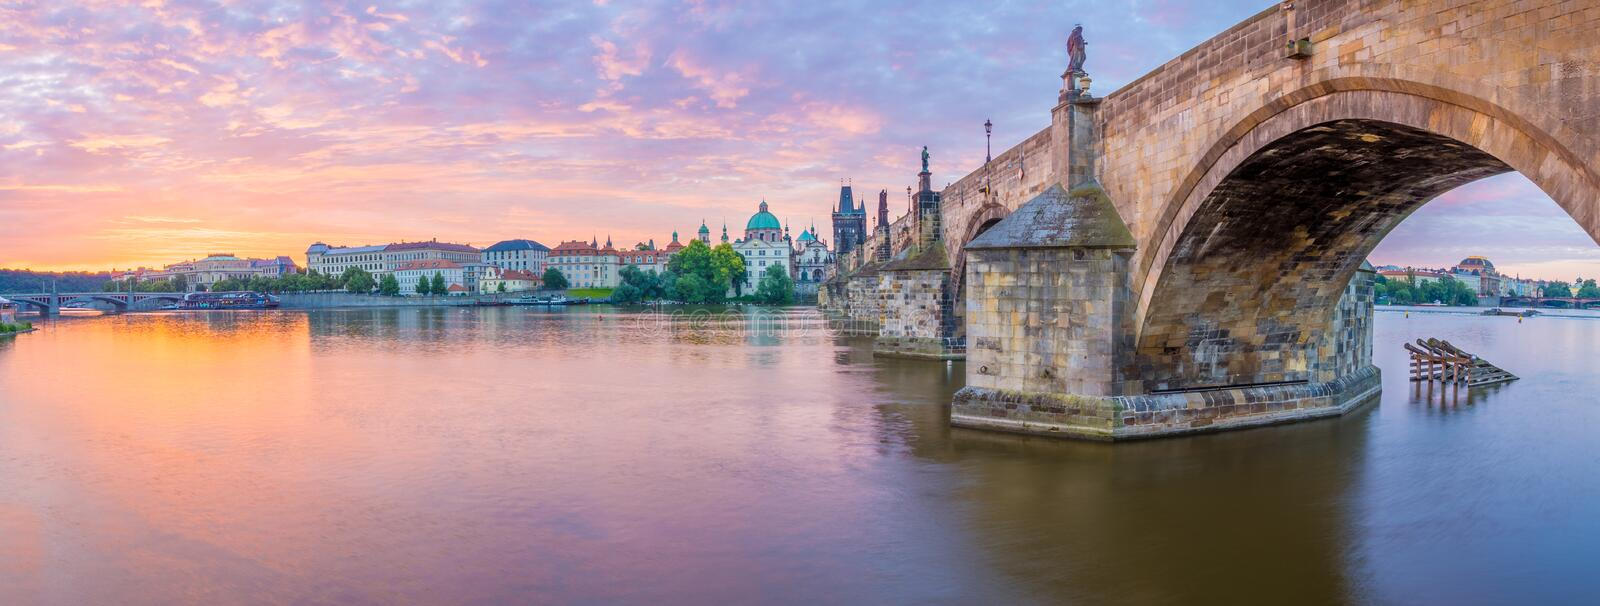 Charles Bridge de Prague photographie stock libre de droits